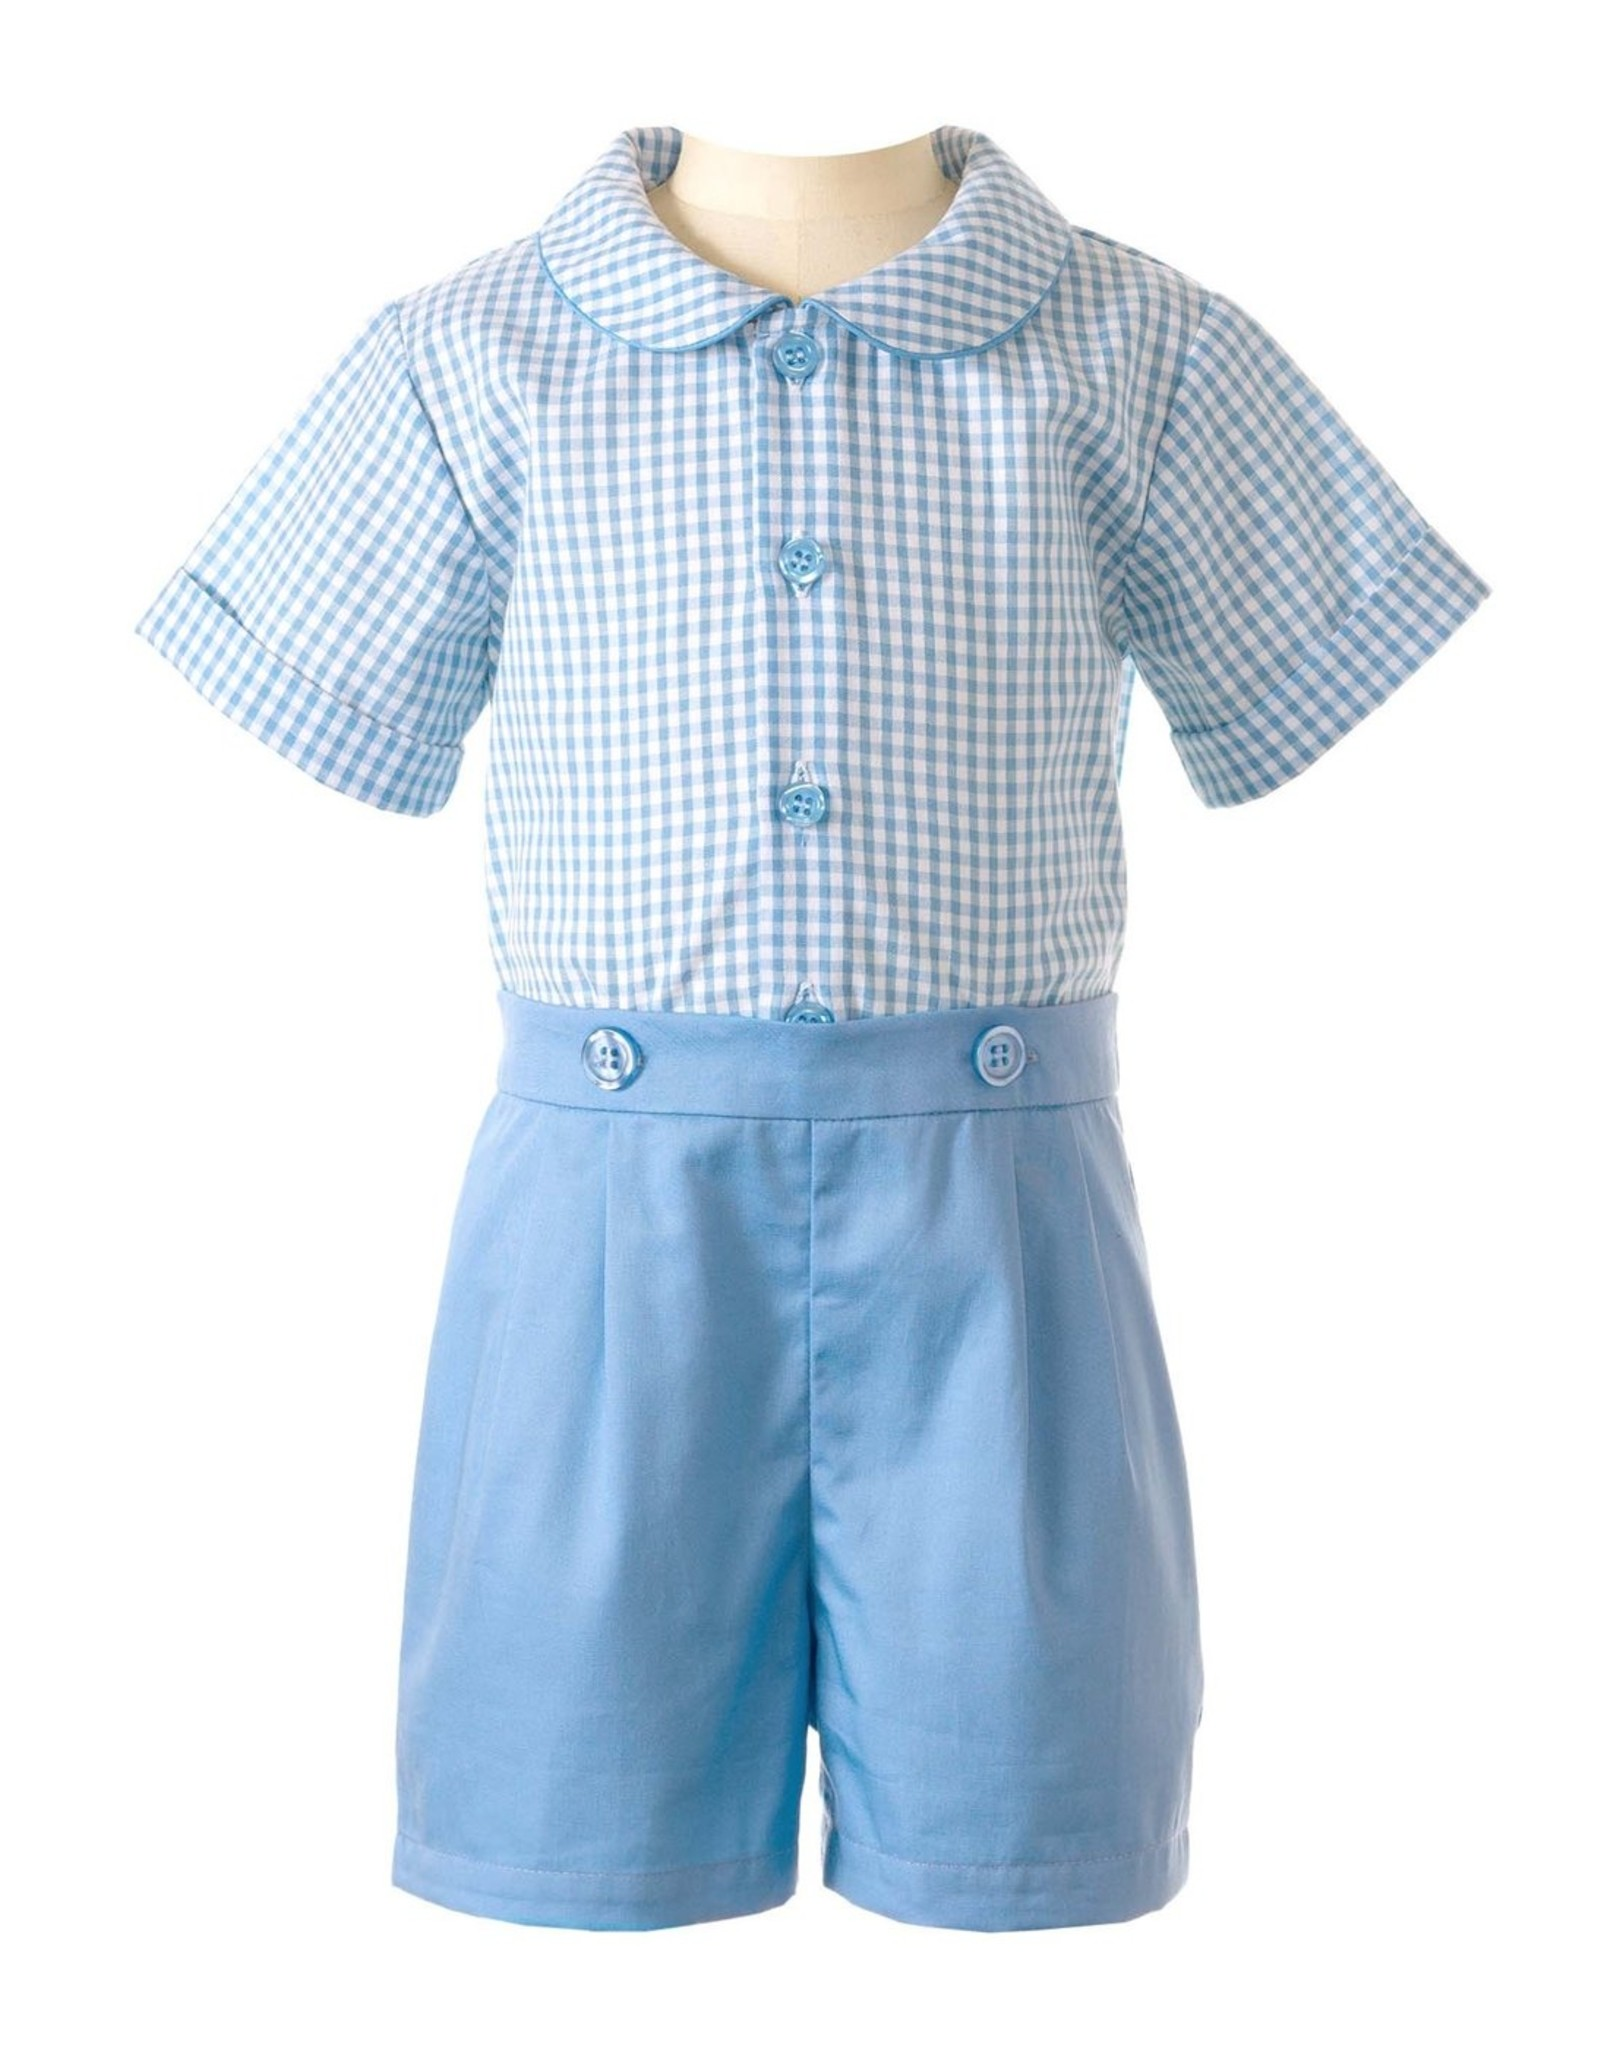 Rachel Riley Blue Gingham Shirt And Short Set